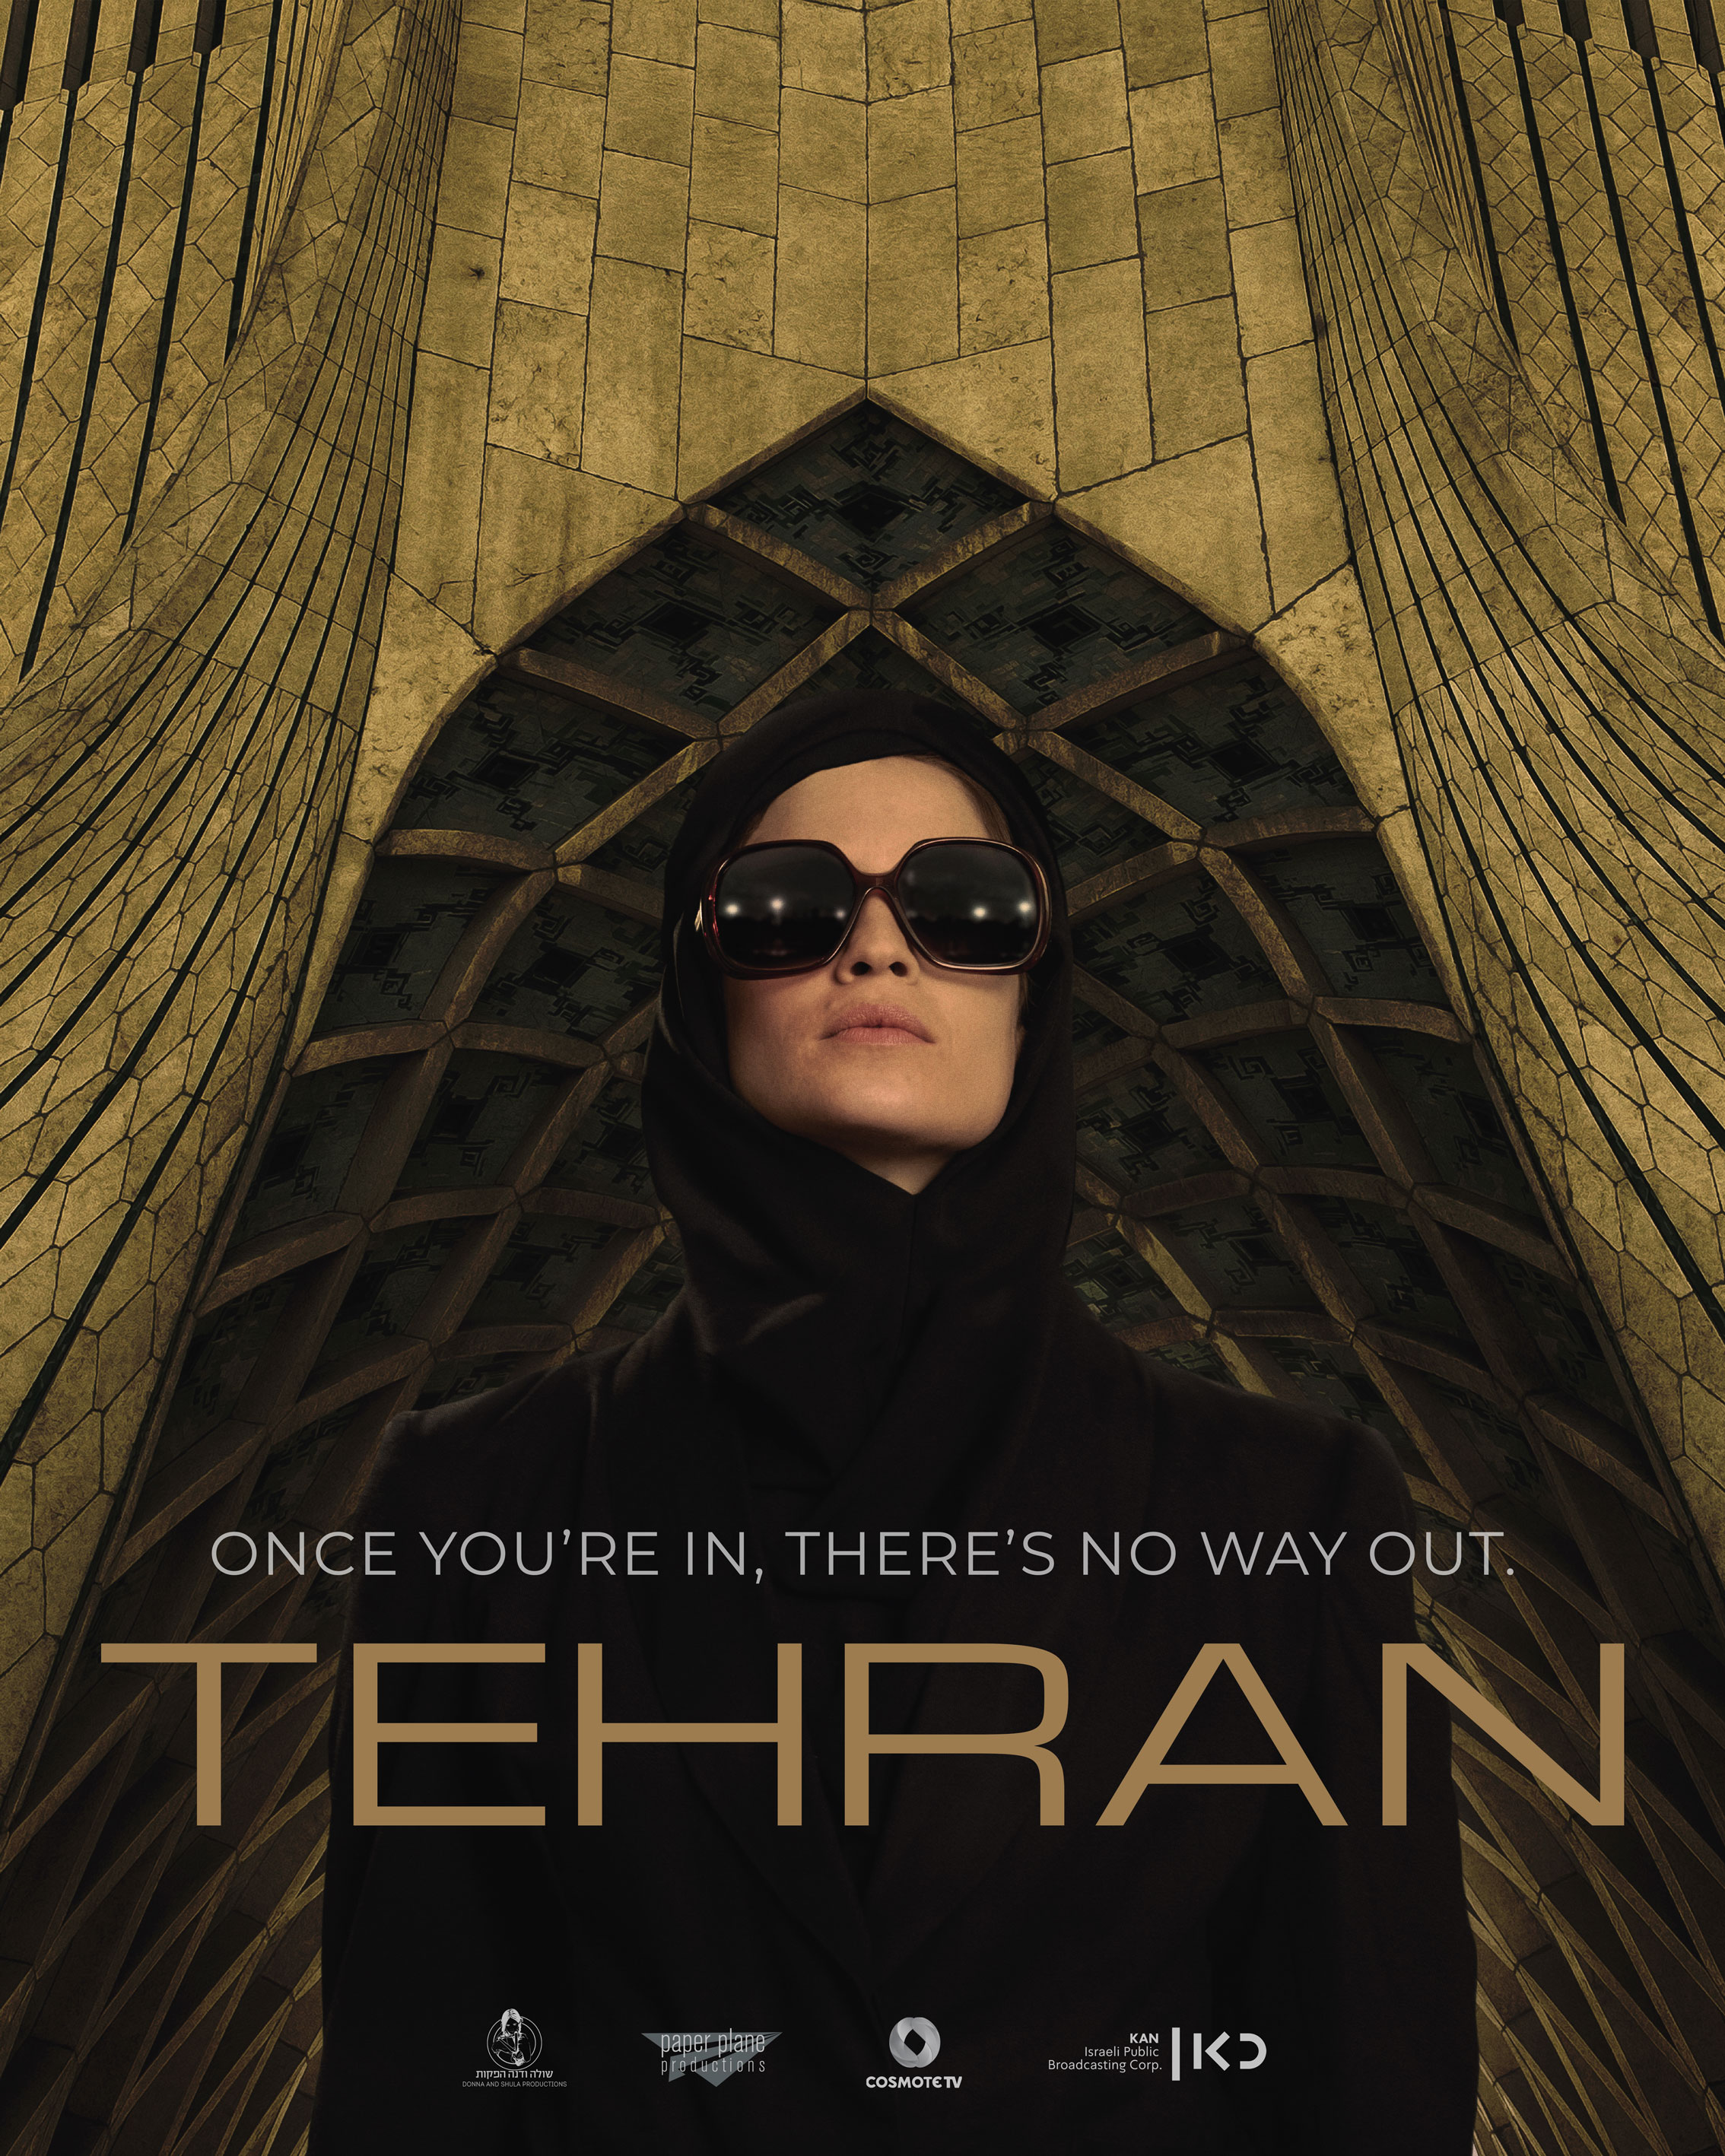 Tehran Season 1 Episode 8 - 5 Hours to the Bombardment